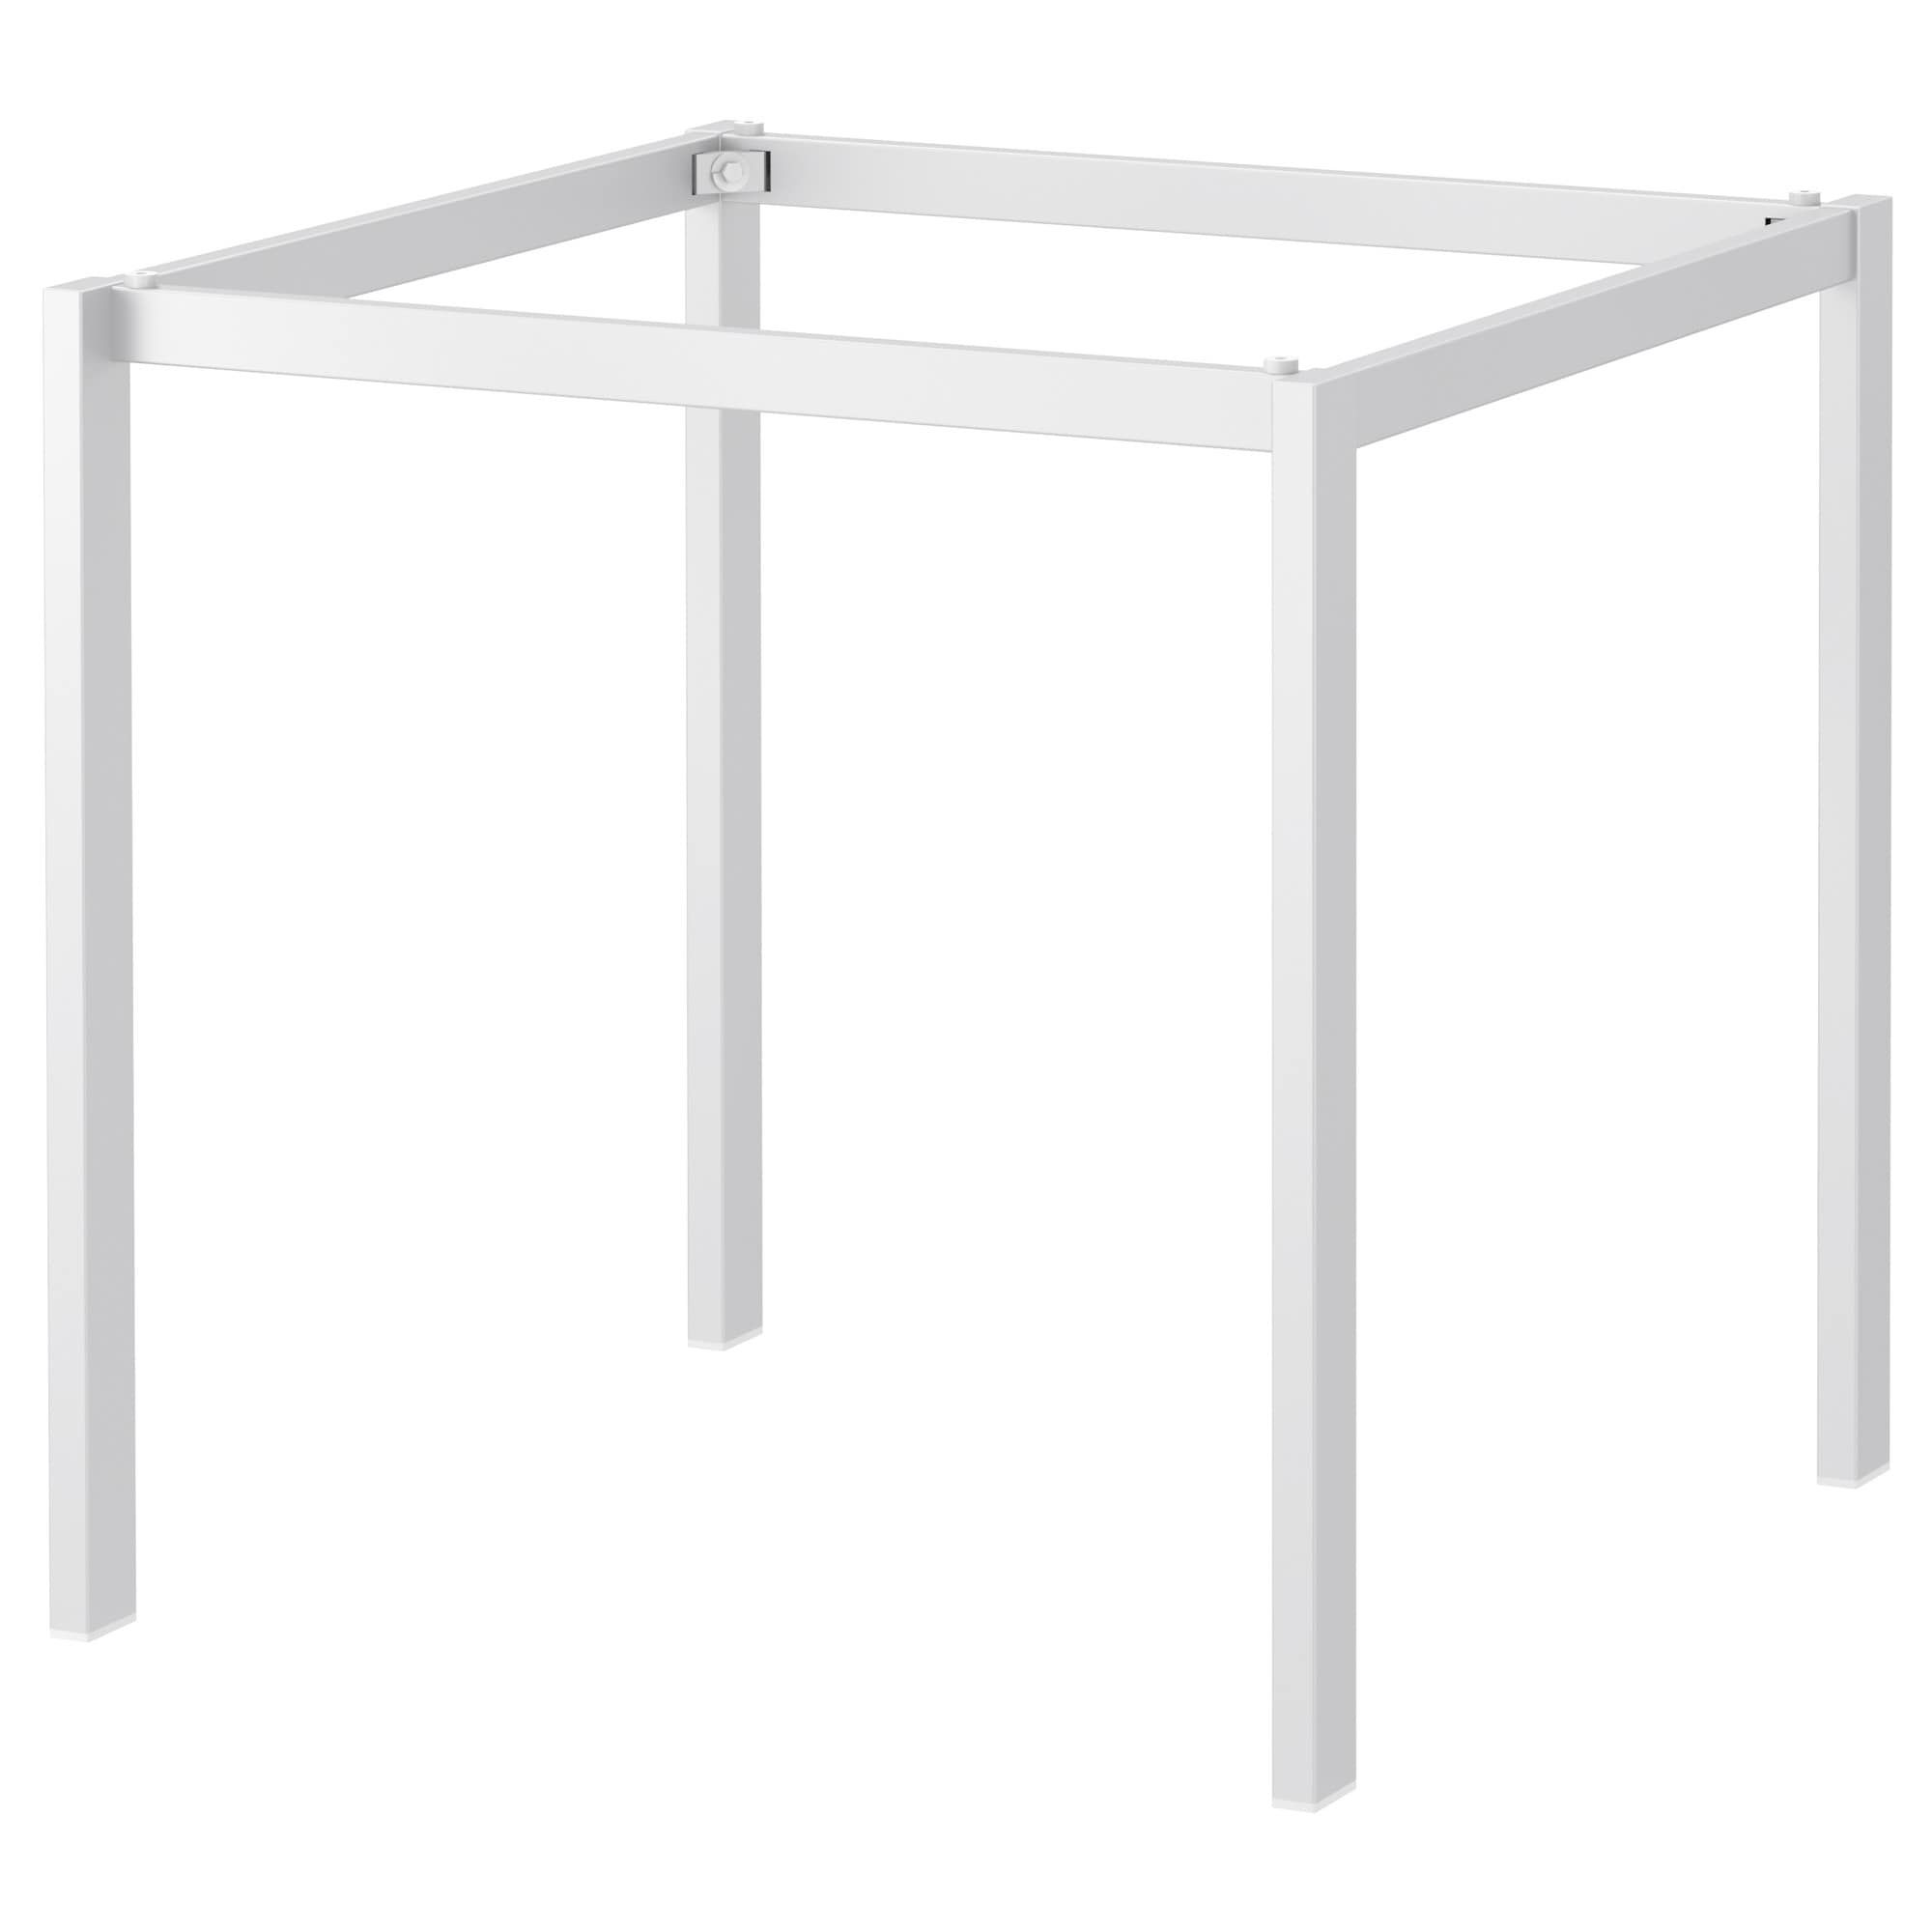 "Underframe, white, 5 5/5x5 5/5 ""  Dining table in kitchen, Ikea"